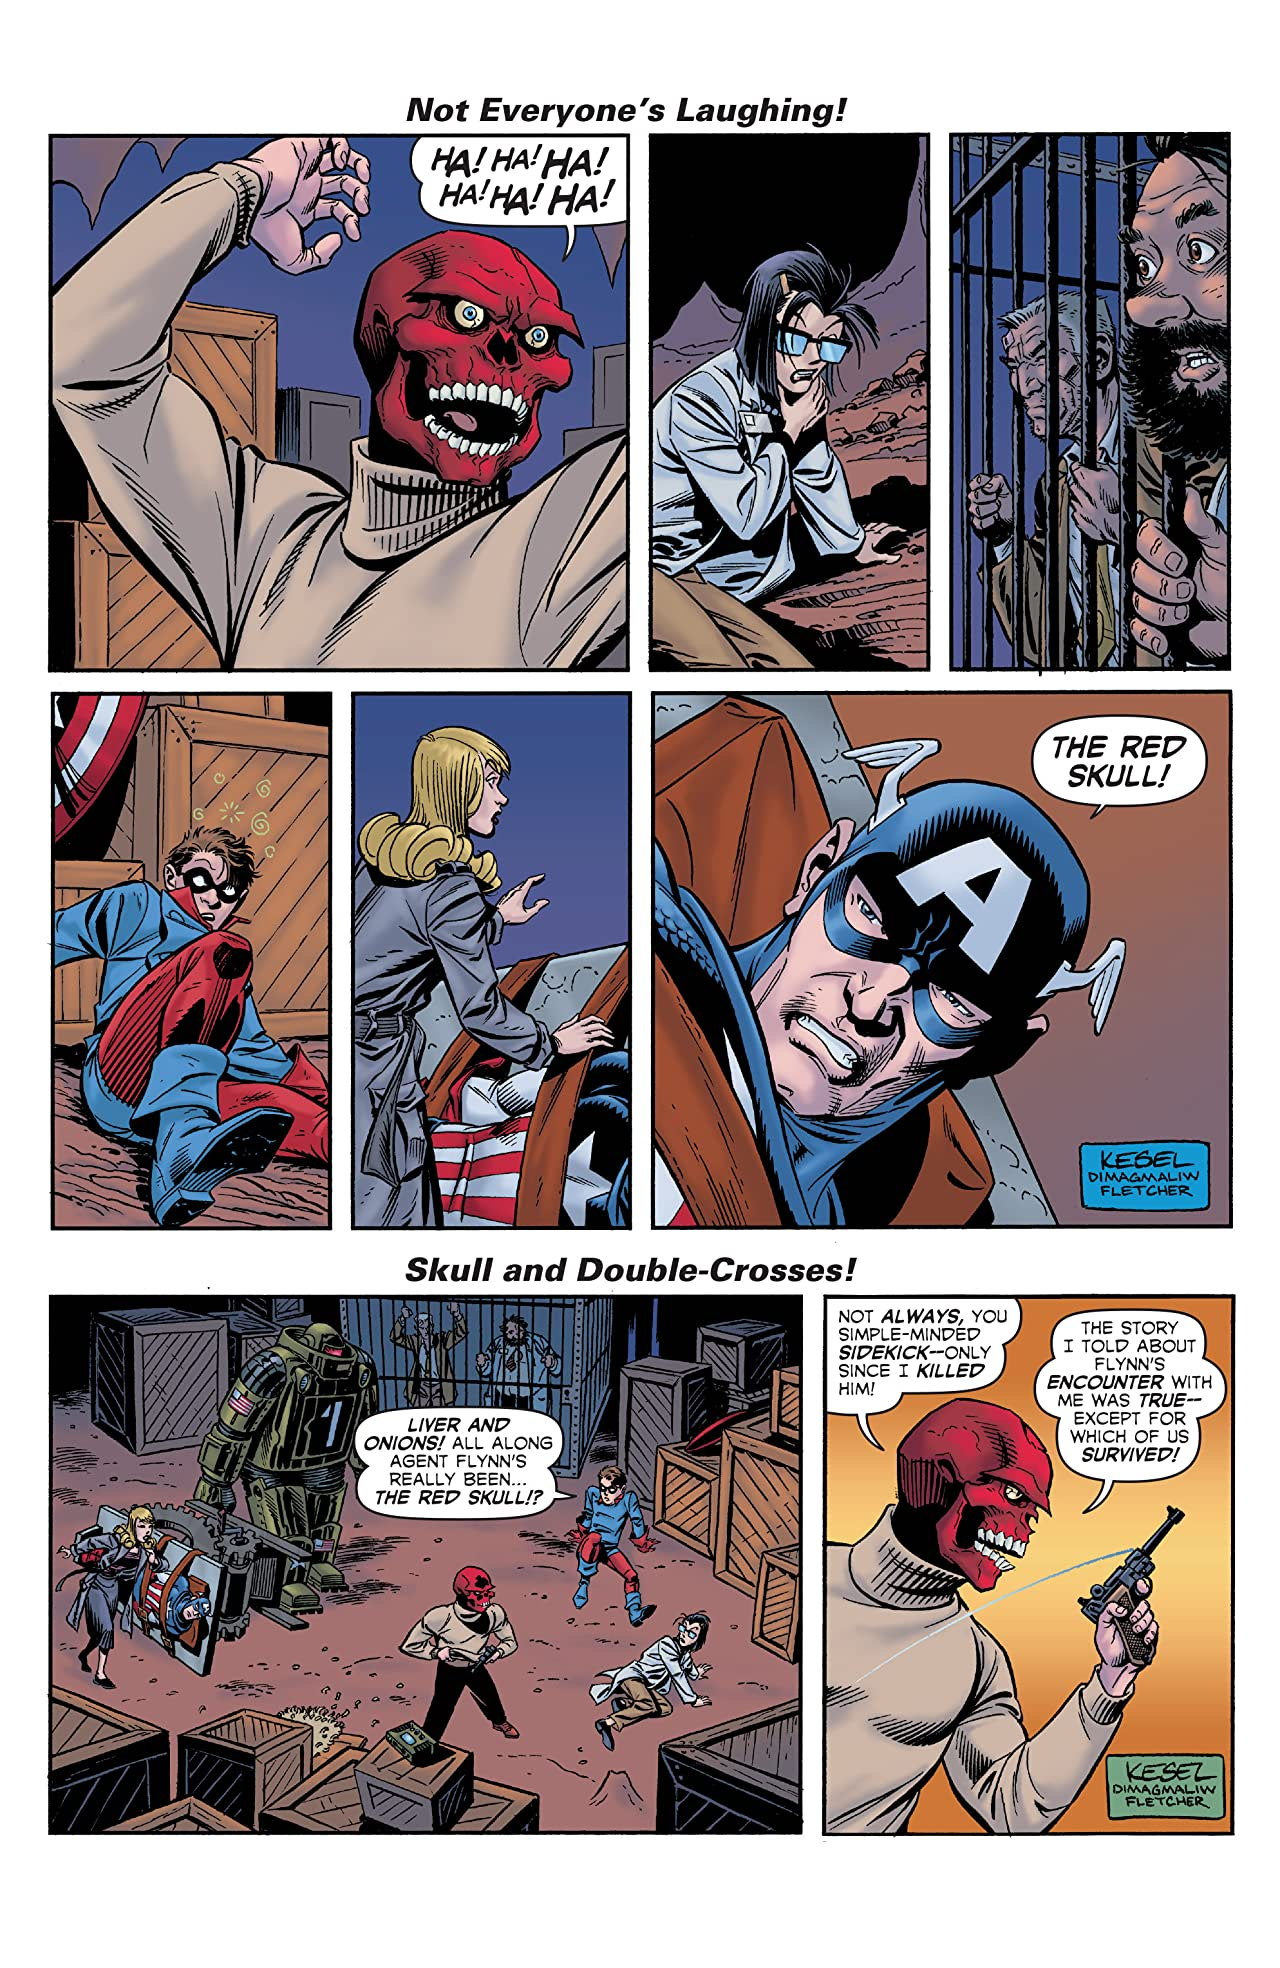 Captain America The 1940s Newspaper Strip (2010) #3 (of 3)